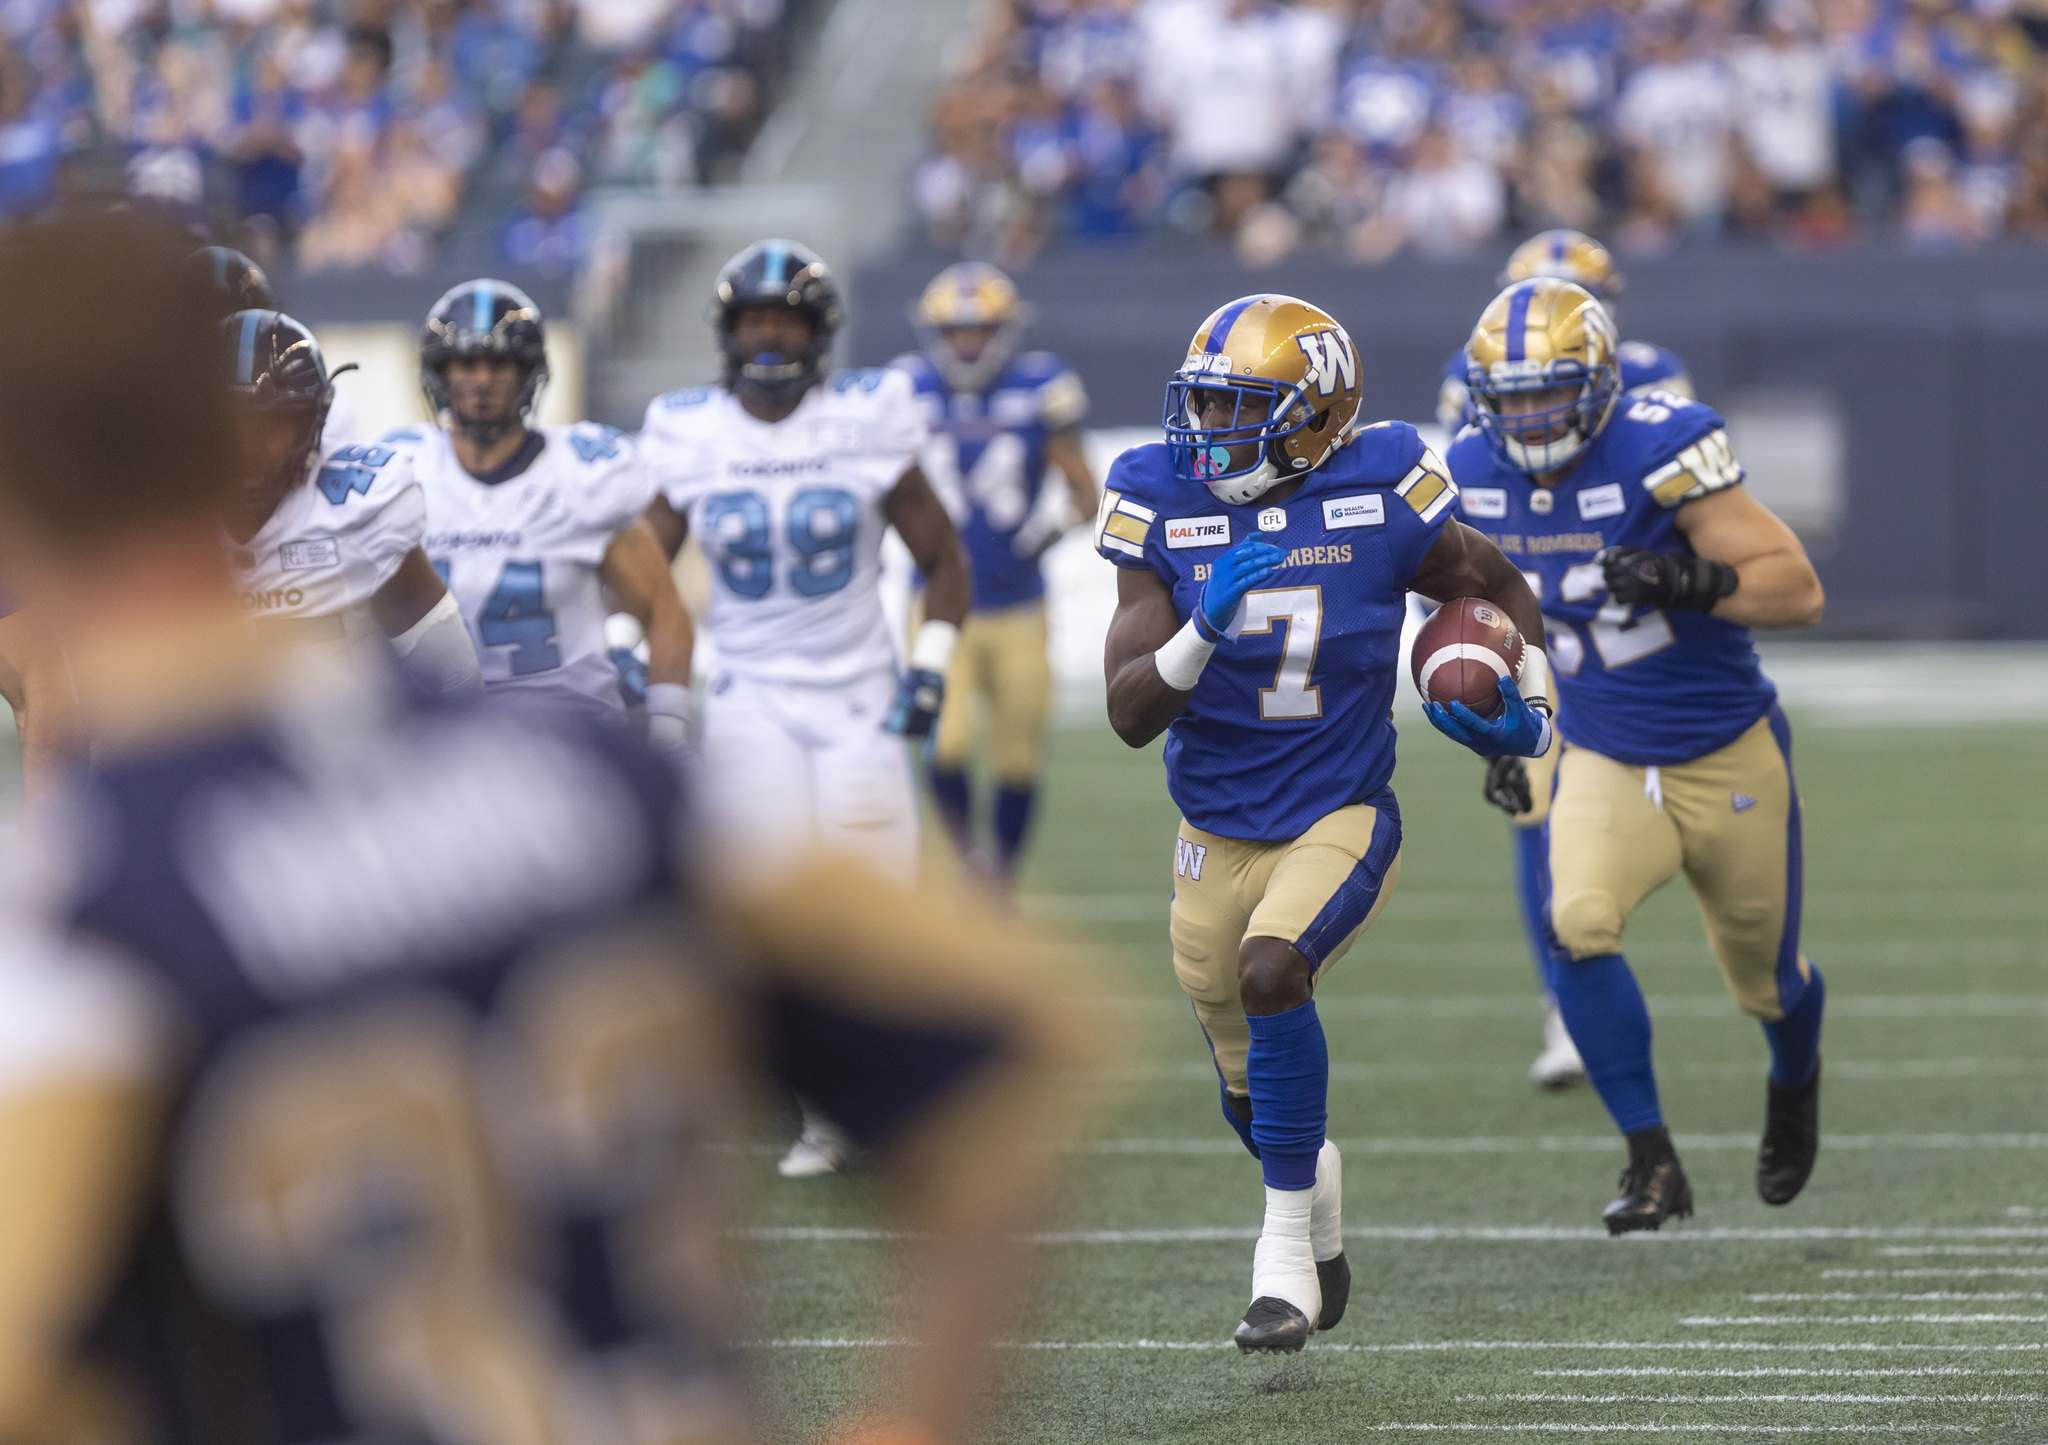 SASHA SEFTER / WINNIPEG FREE PRESS</p><p>Winnipeg Blue Bombers wide receiver Lucky Whitehead returns the games opening kickoff for a touchdown against the Toronto Argonauts at IG Field on Friday night.</p>